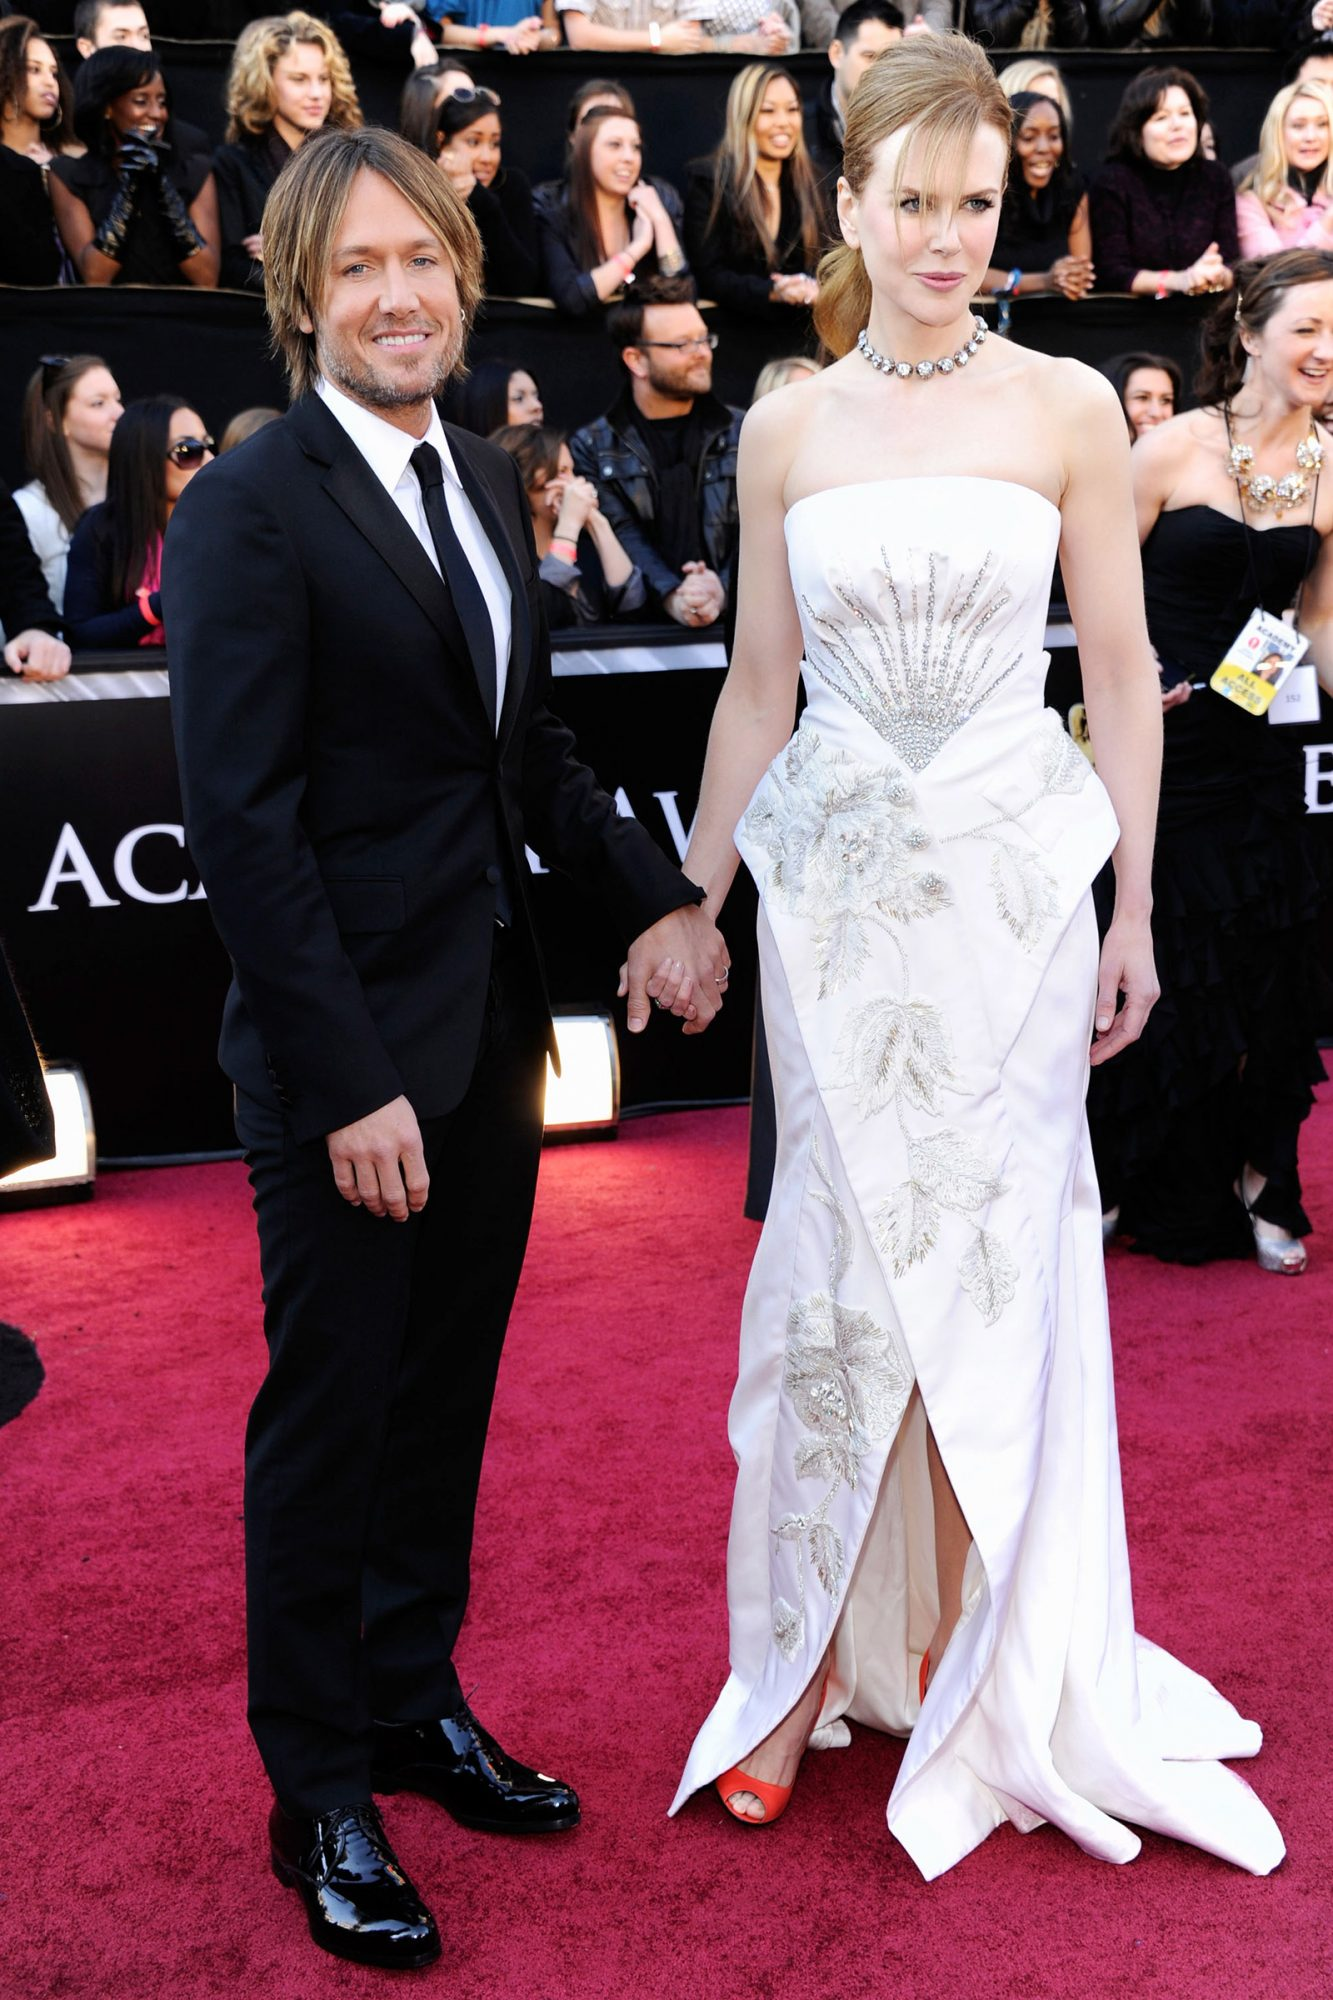 2011 Academy Awards, Keith Urban, Nicole Kidman